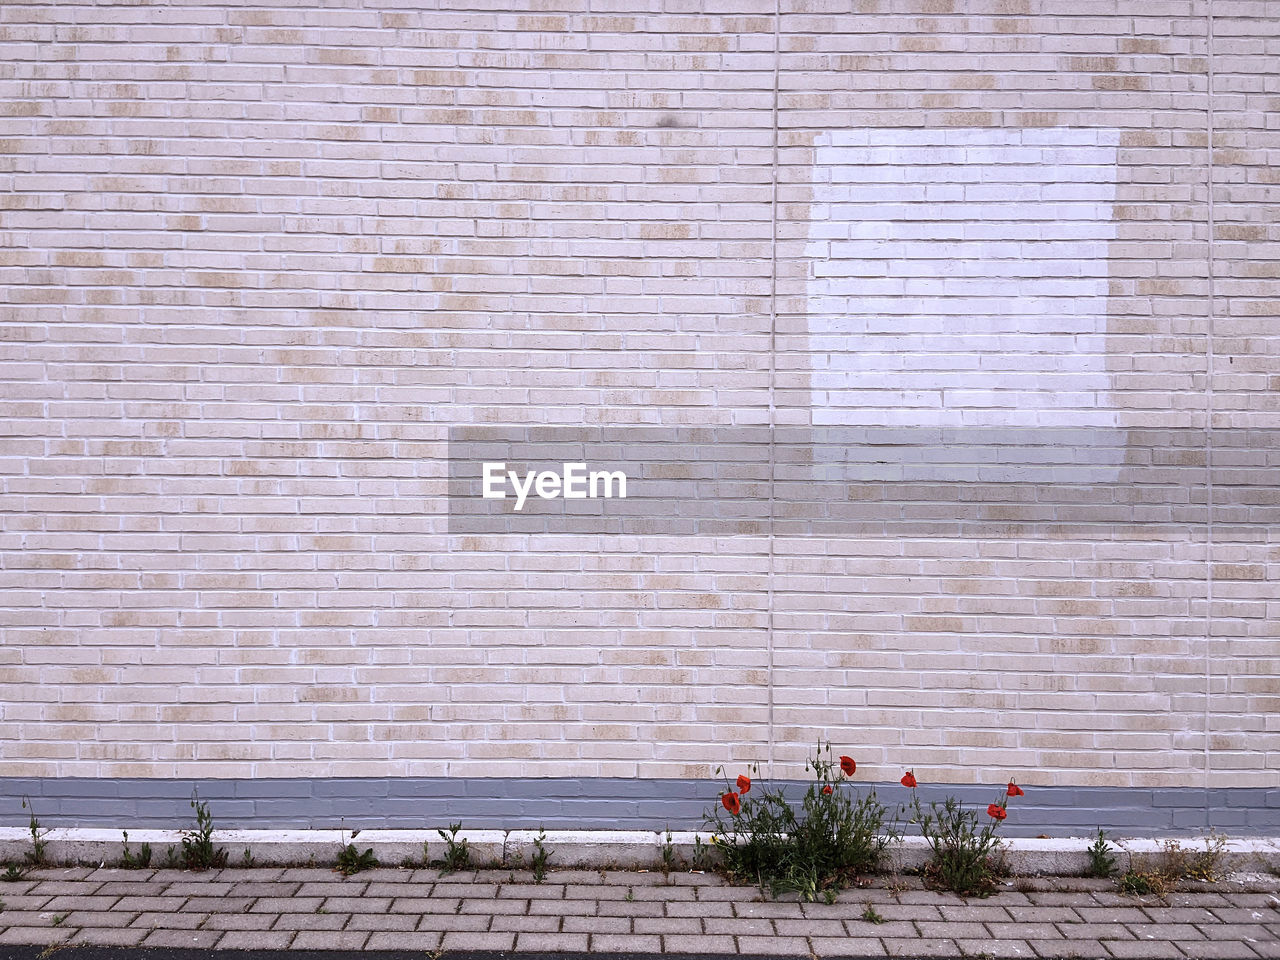 VIEW OF BRICK WALL BY WINDOW